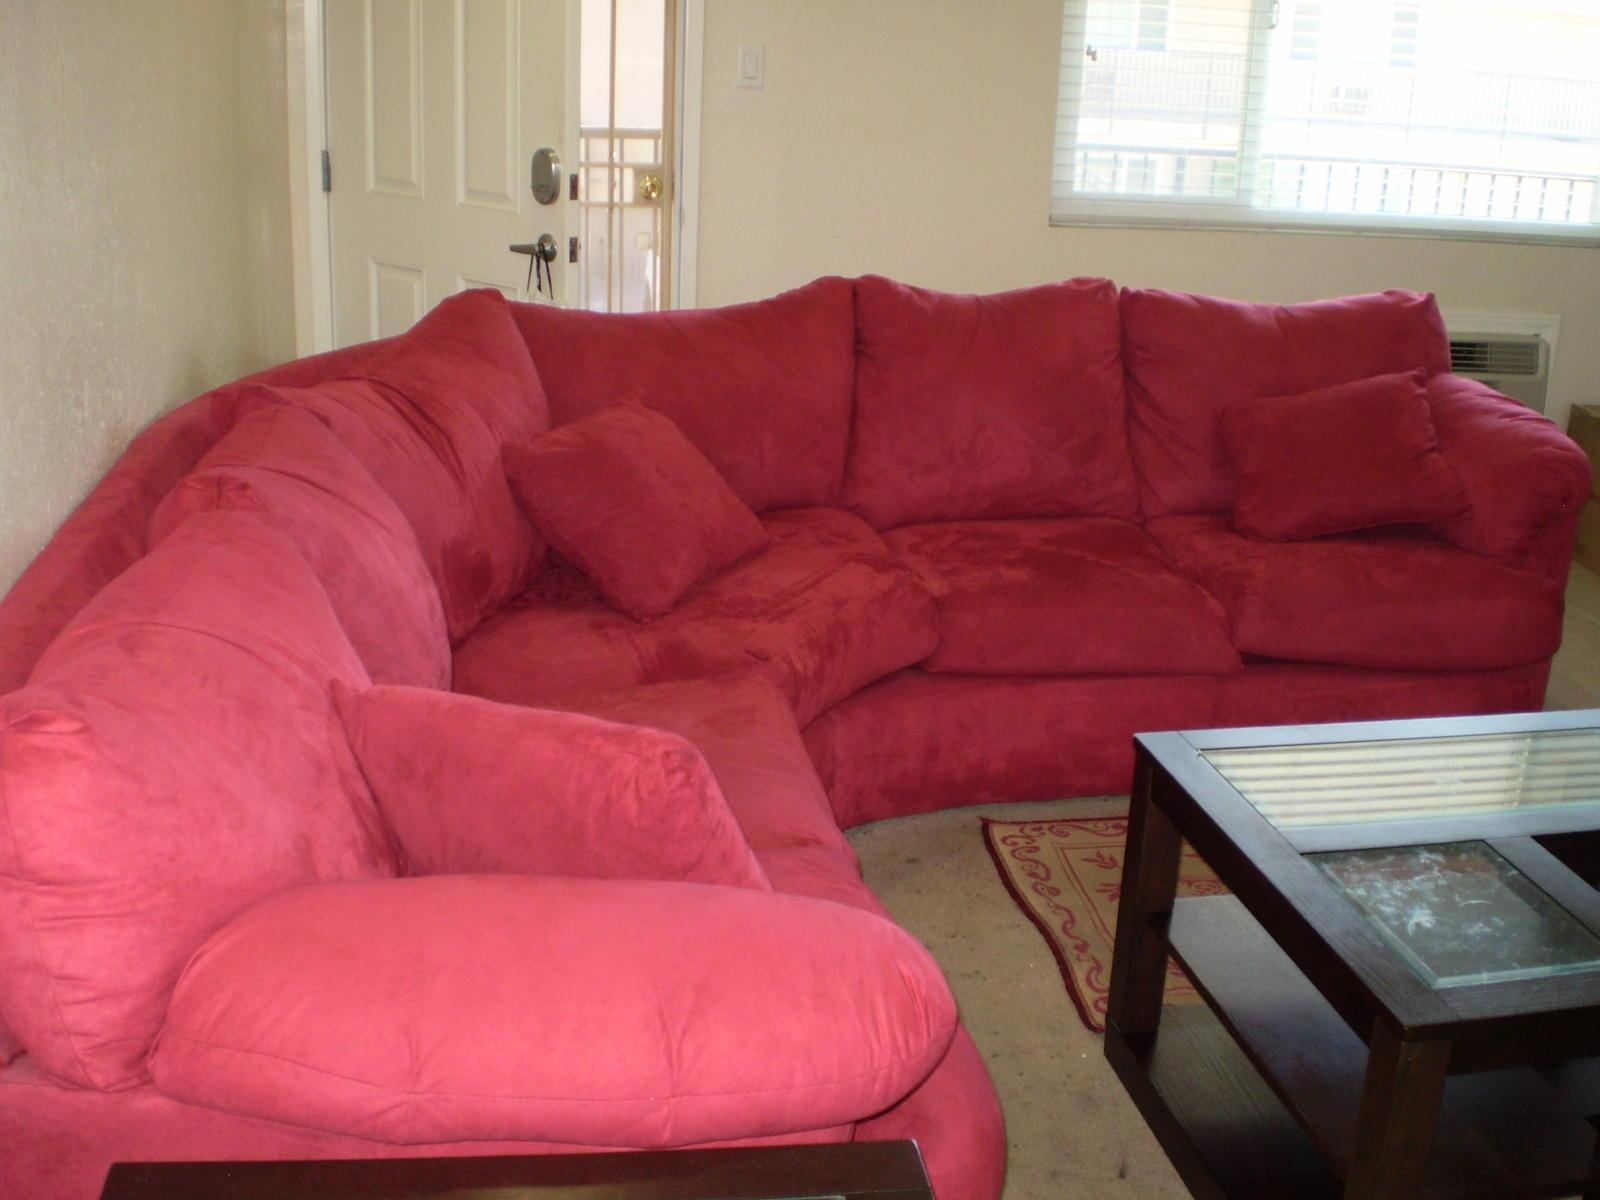 Red Sectional Sofa Microfiber | Centerfieldbar With Red Microfiber Sectional Sofas (Image 13 of 21)